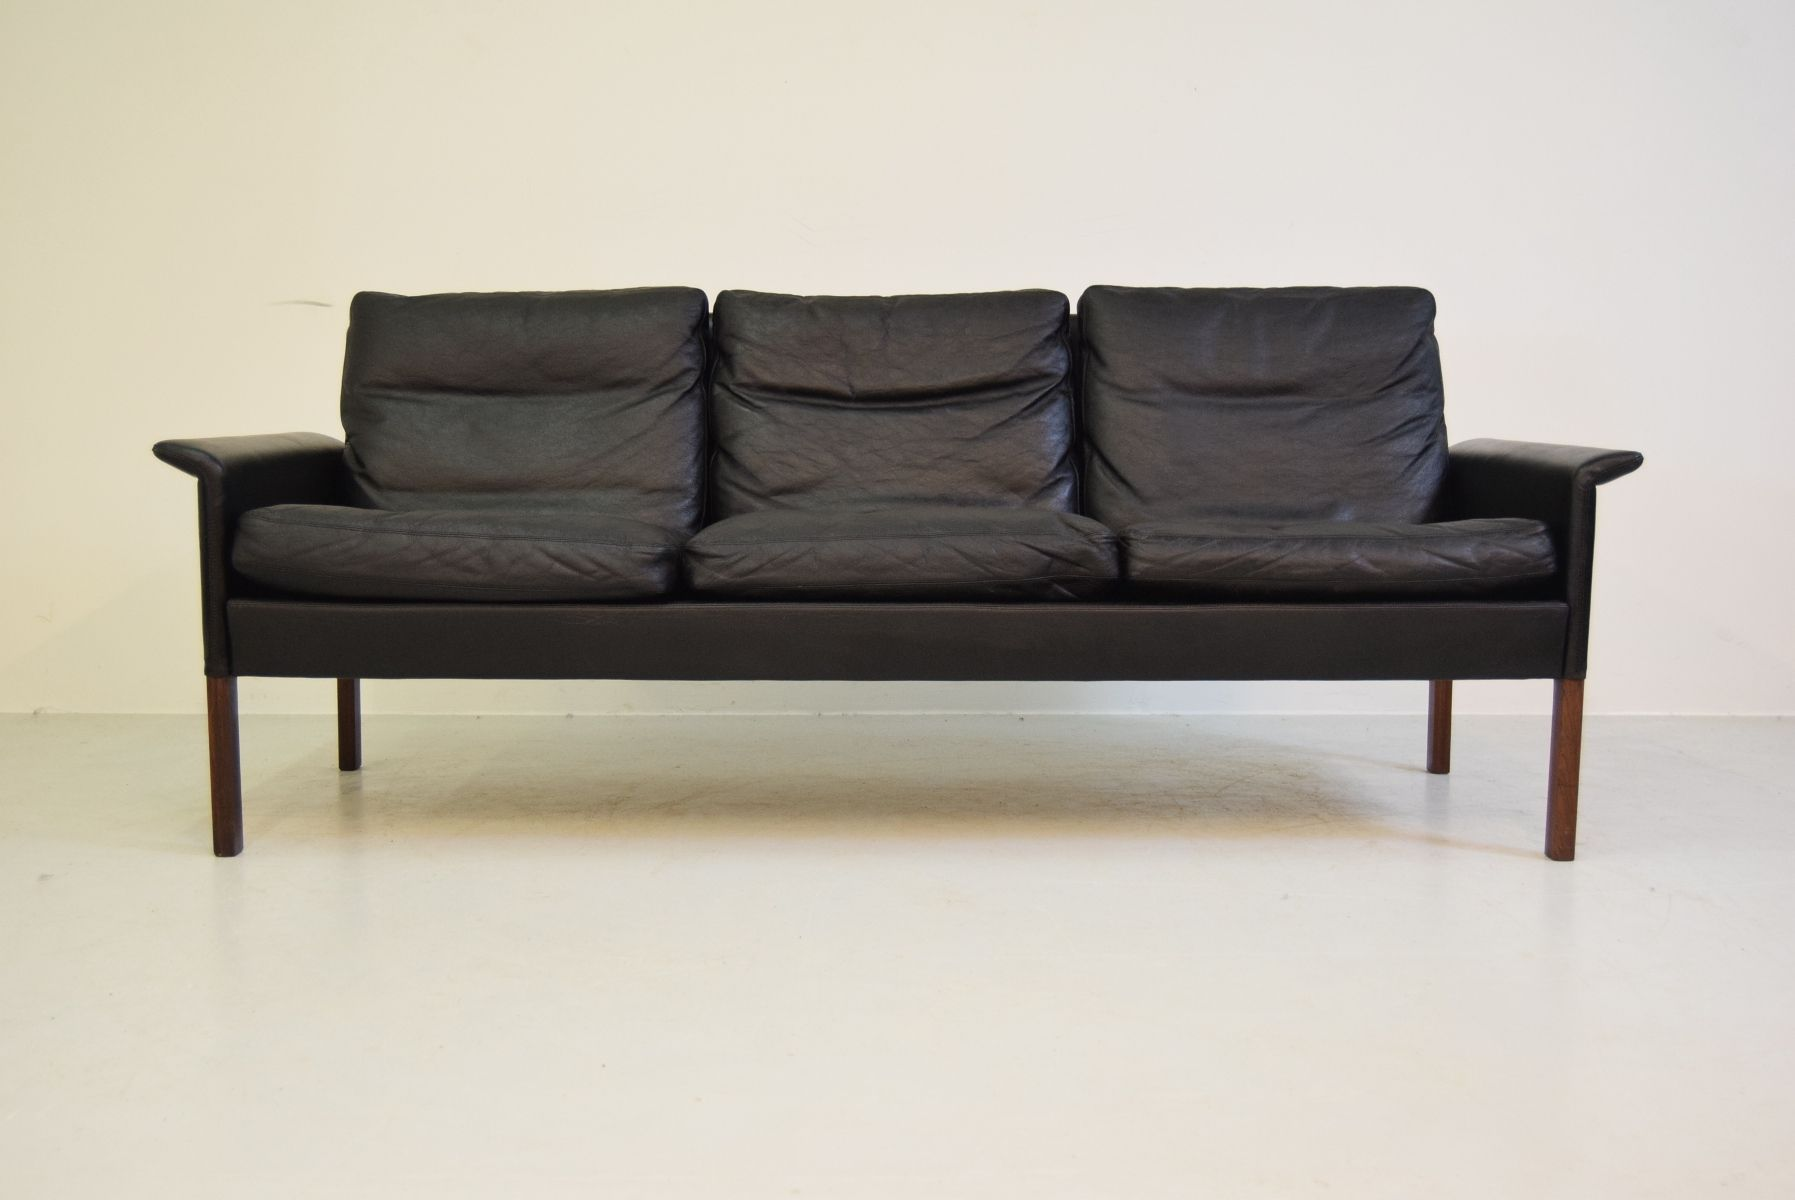 mid century sofa und sessel von hans olsen f r c s m bler. Black Bedroom Furniture Sets. Home Design Ideas